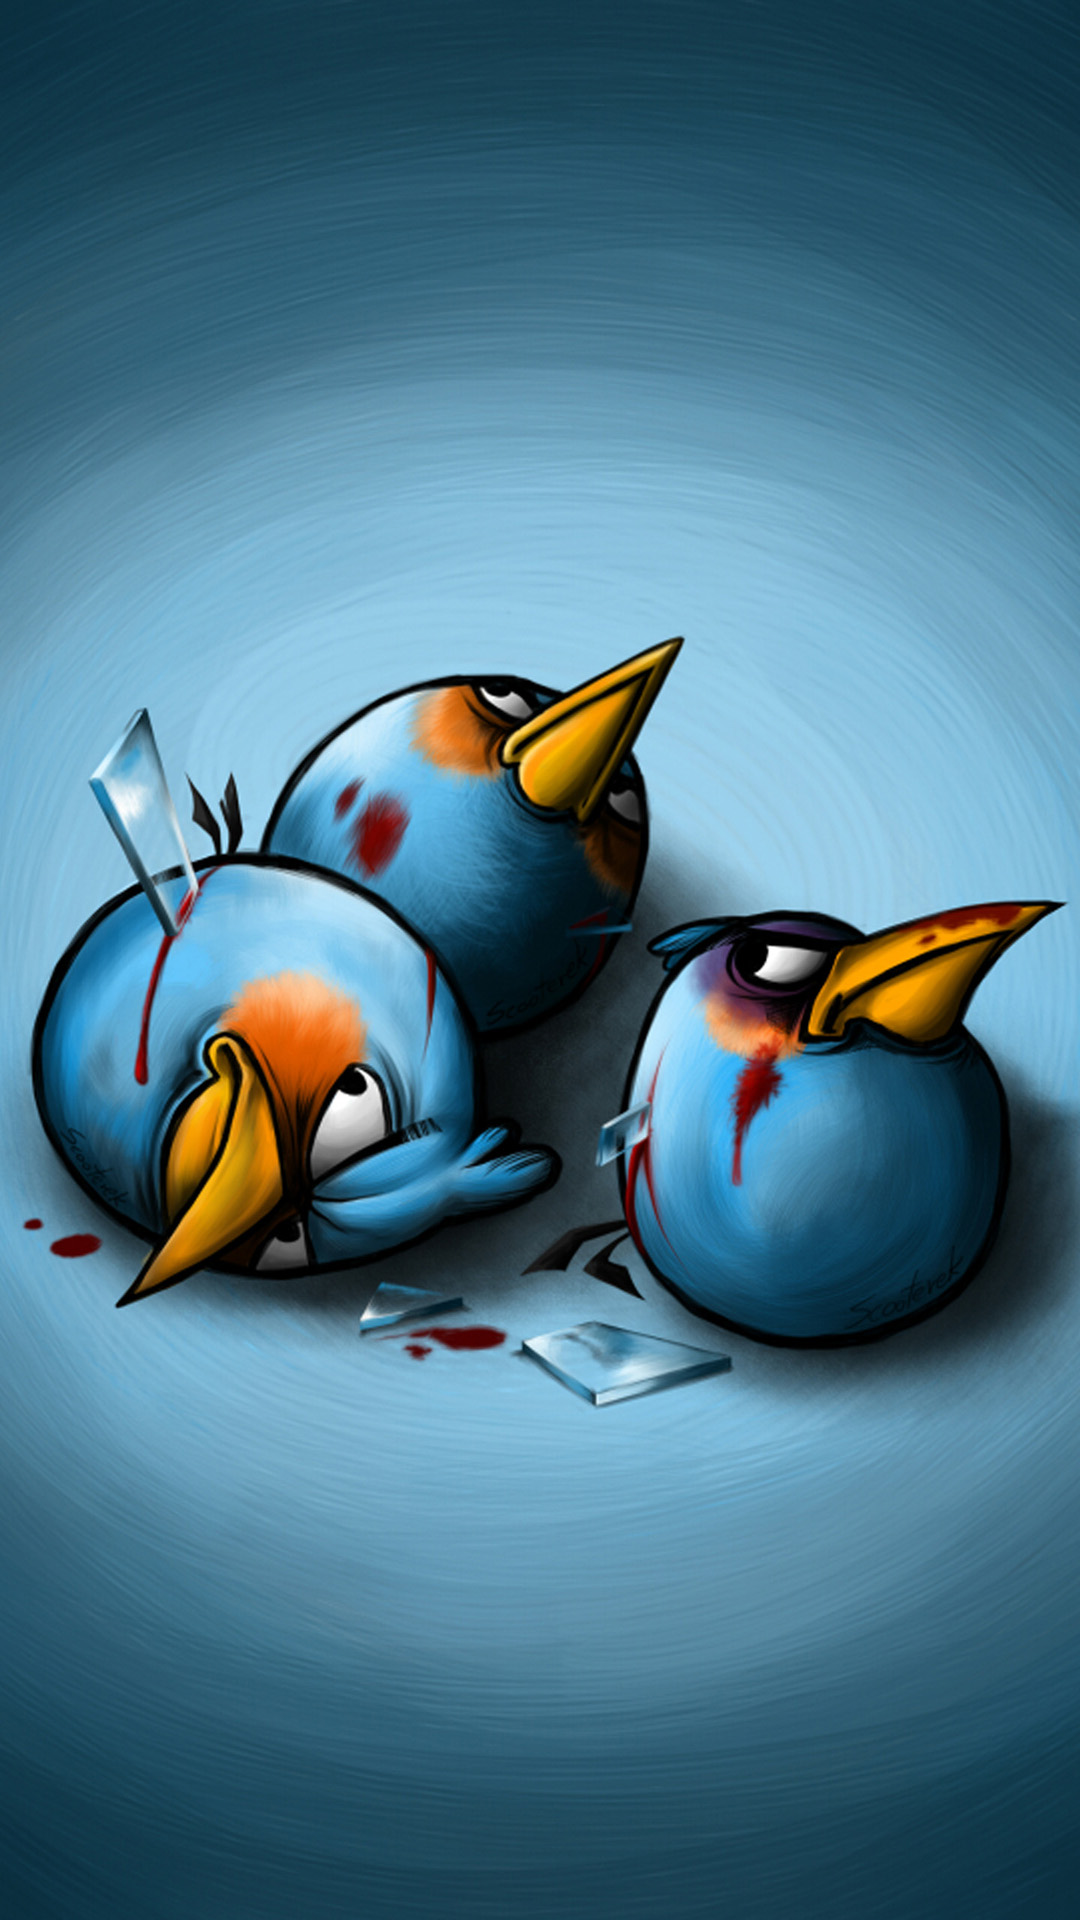 iphone 6 plus angry birds 21 hd wallpaper